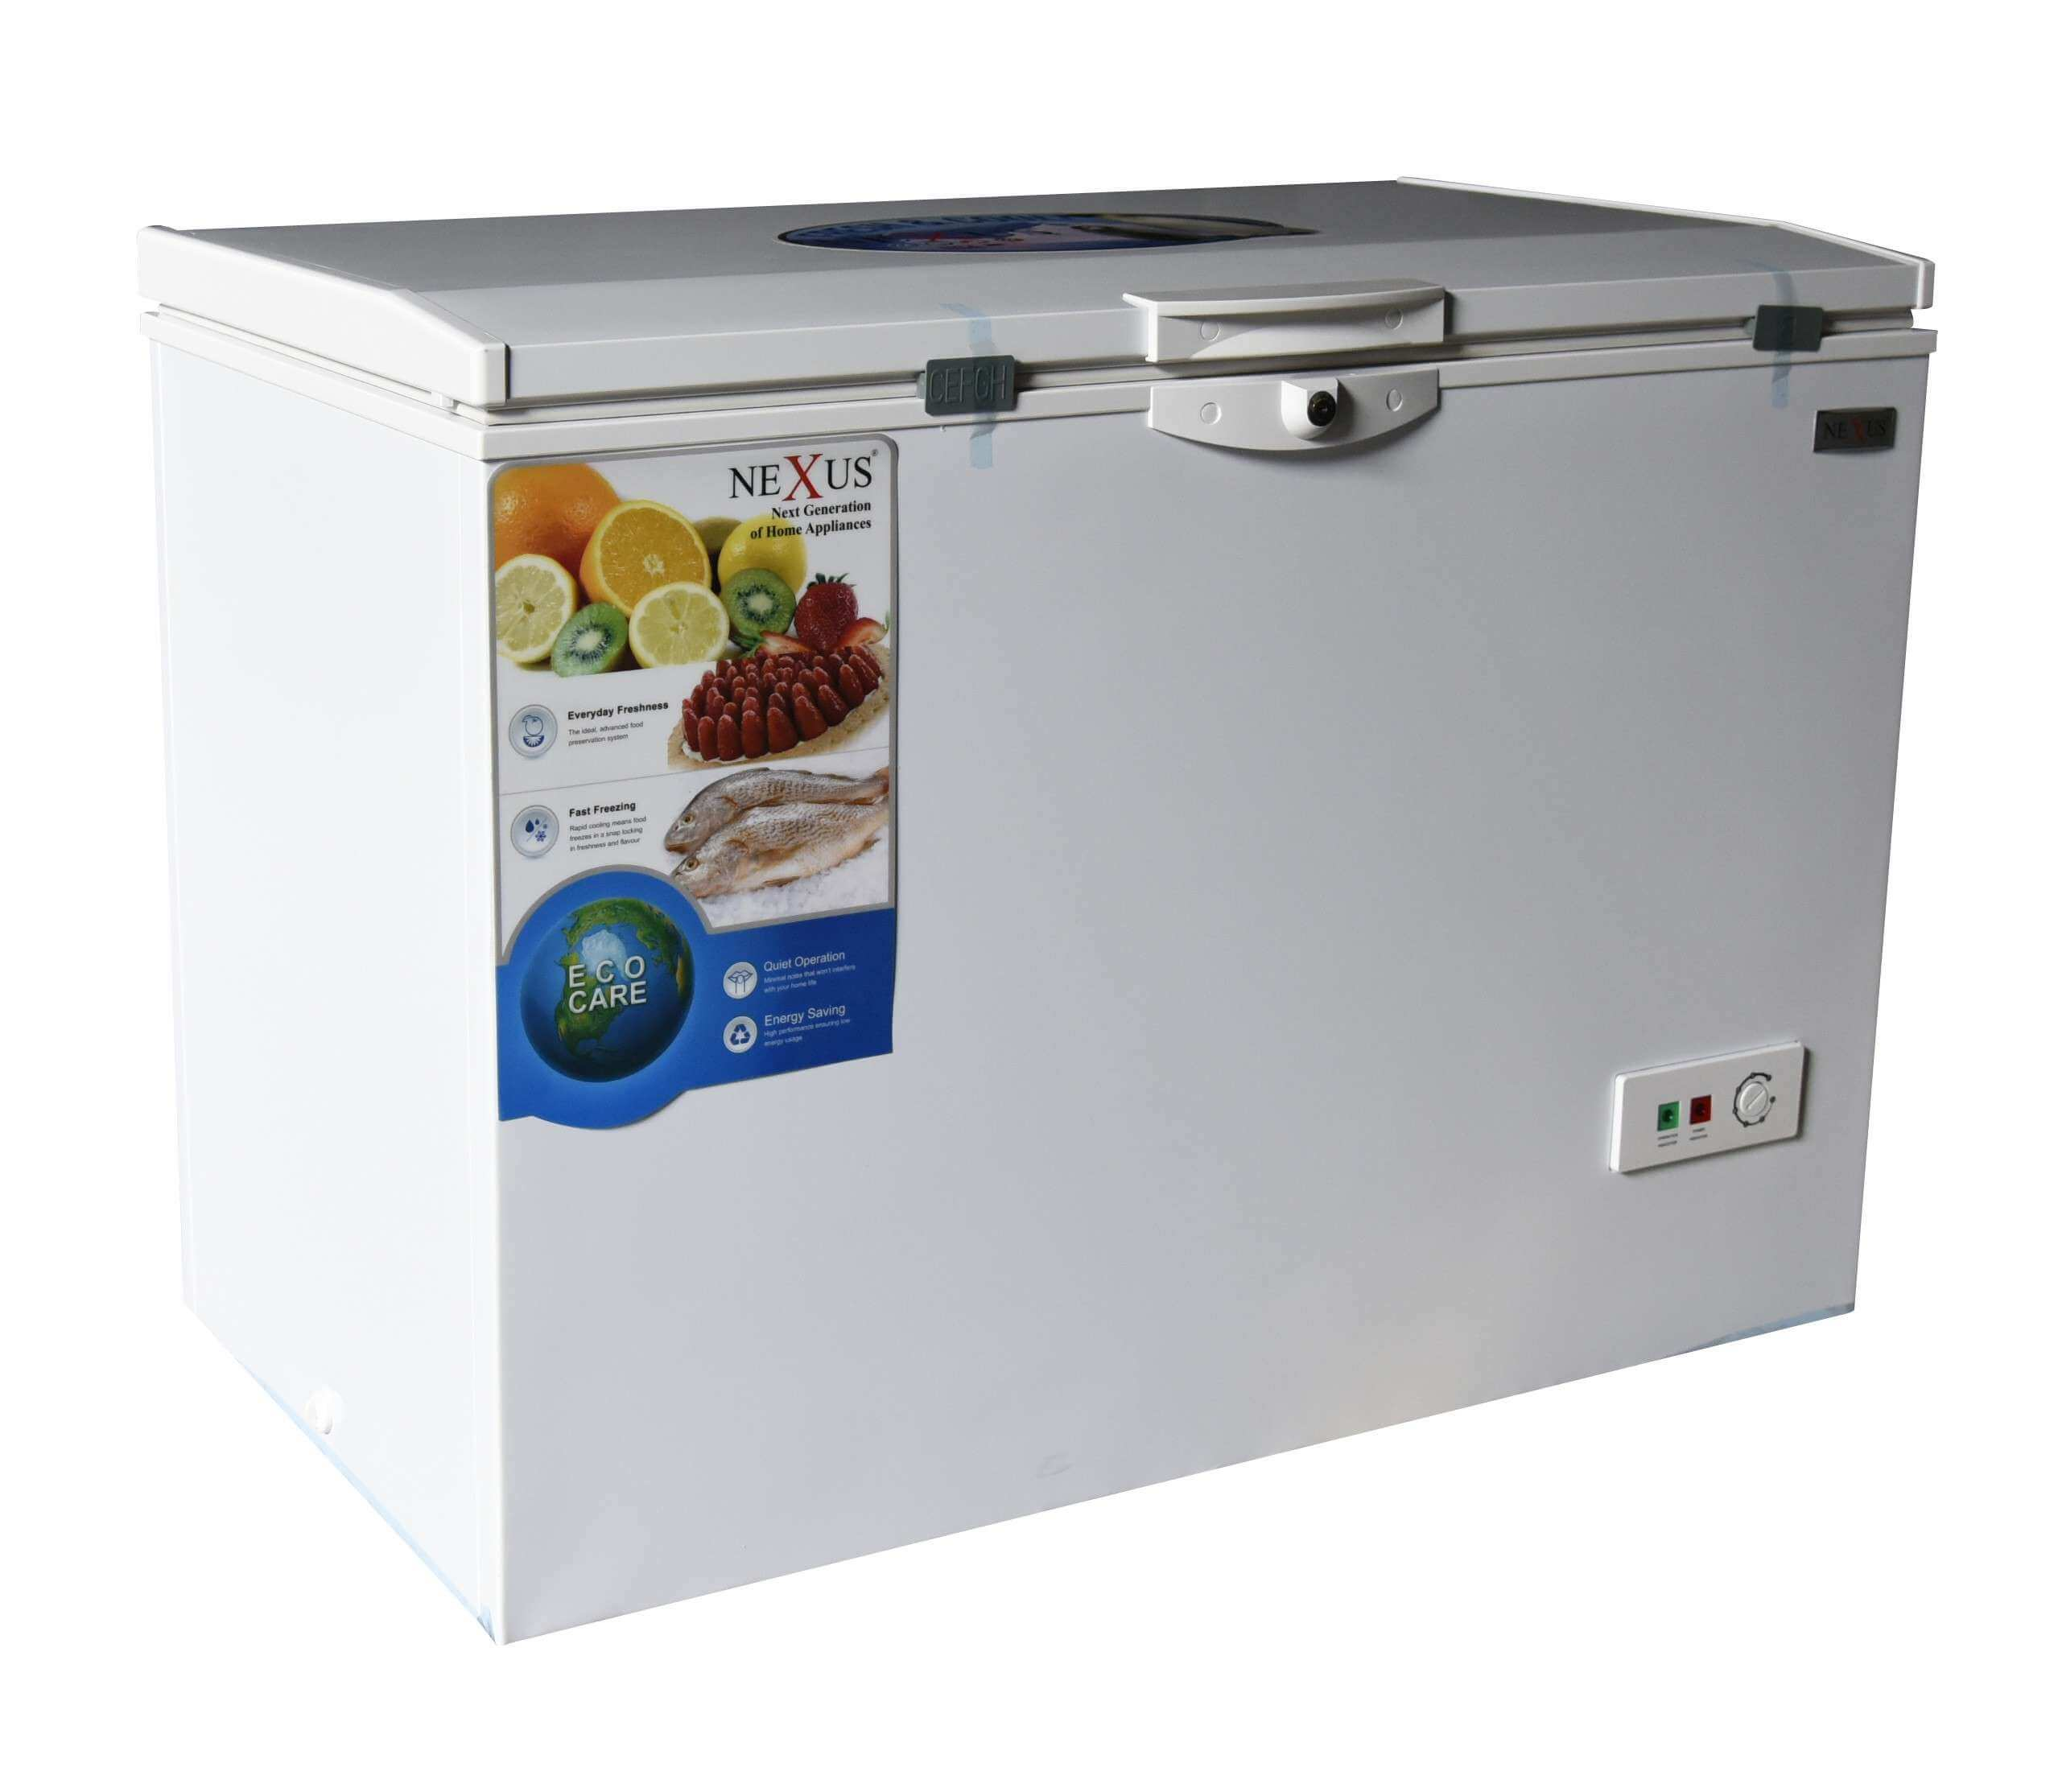 NX-390C LTR NEXUS CHEST FREEZER WITH COOL PACK WHITE